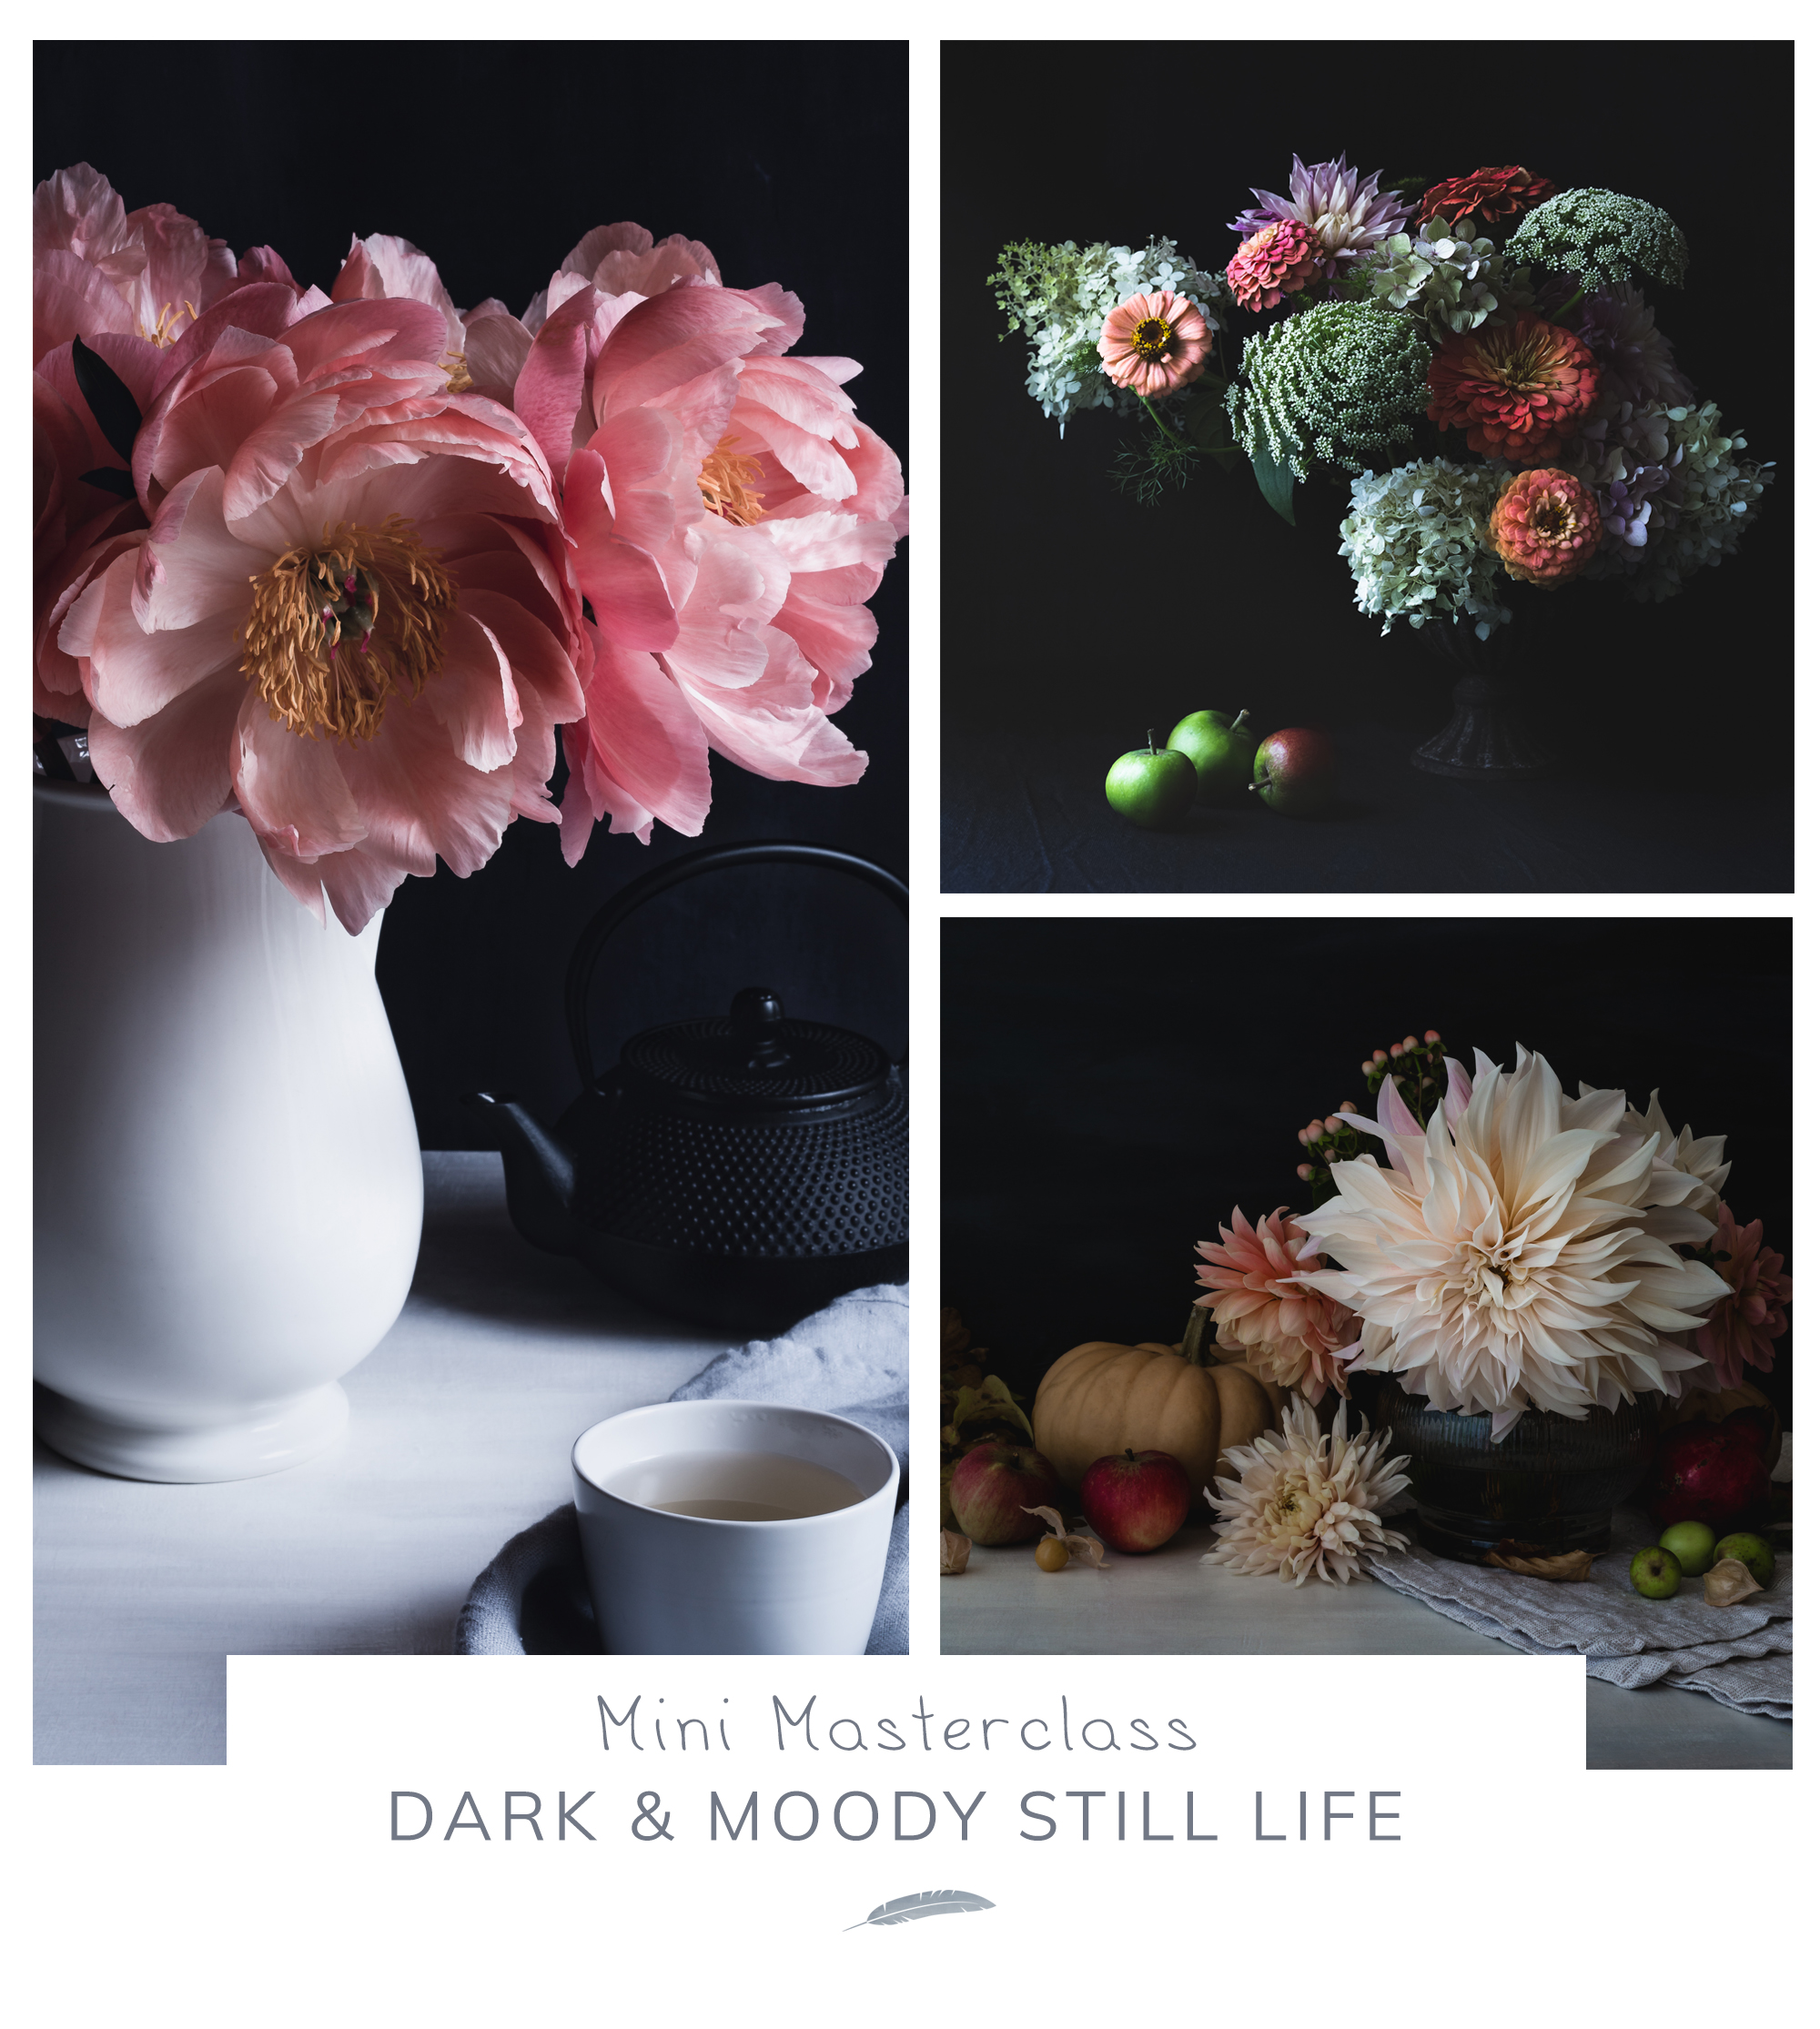 Dark & Moody still life photography